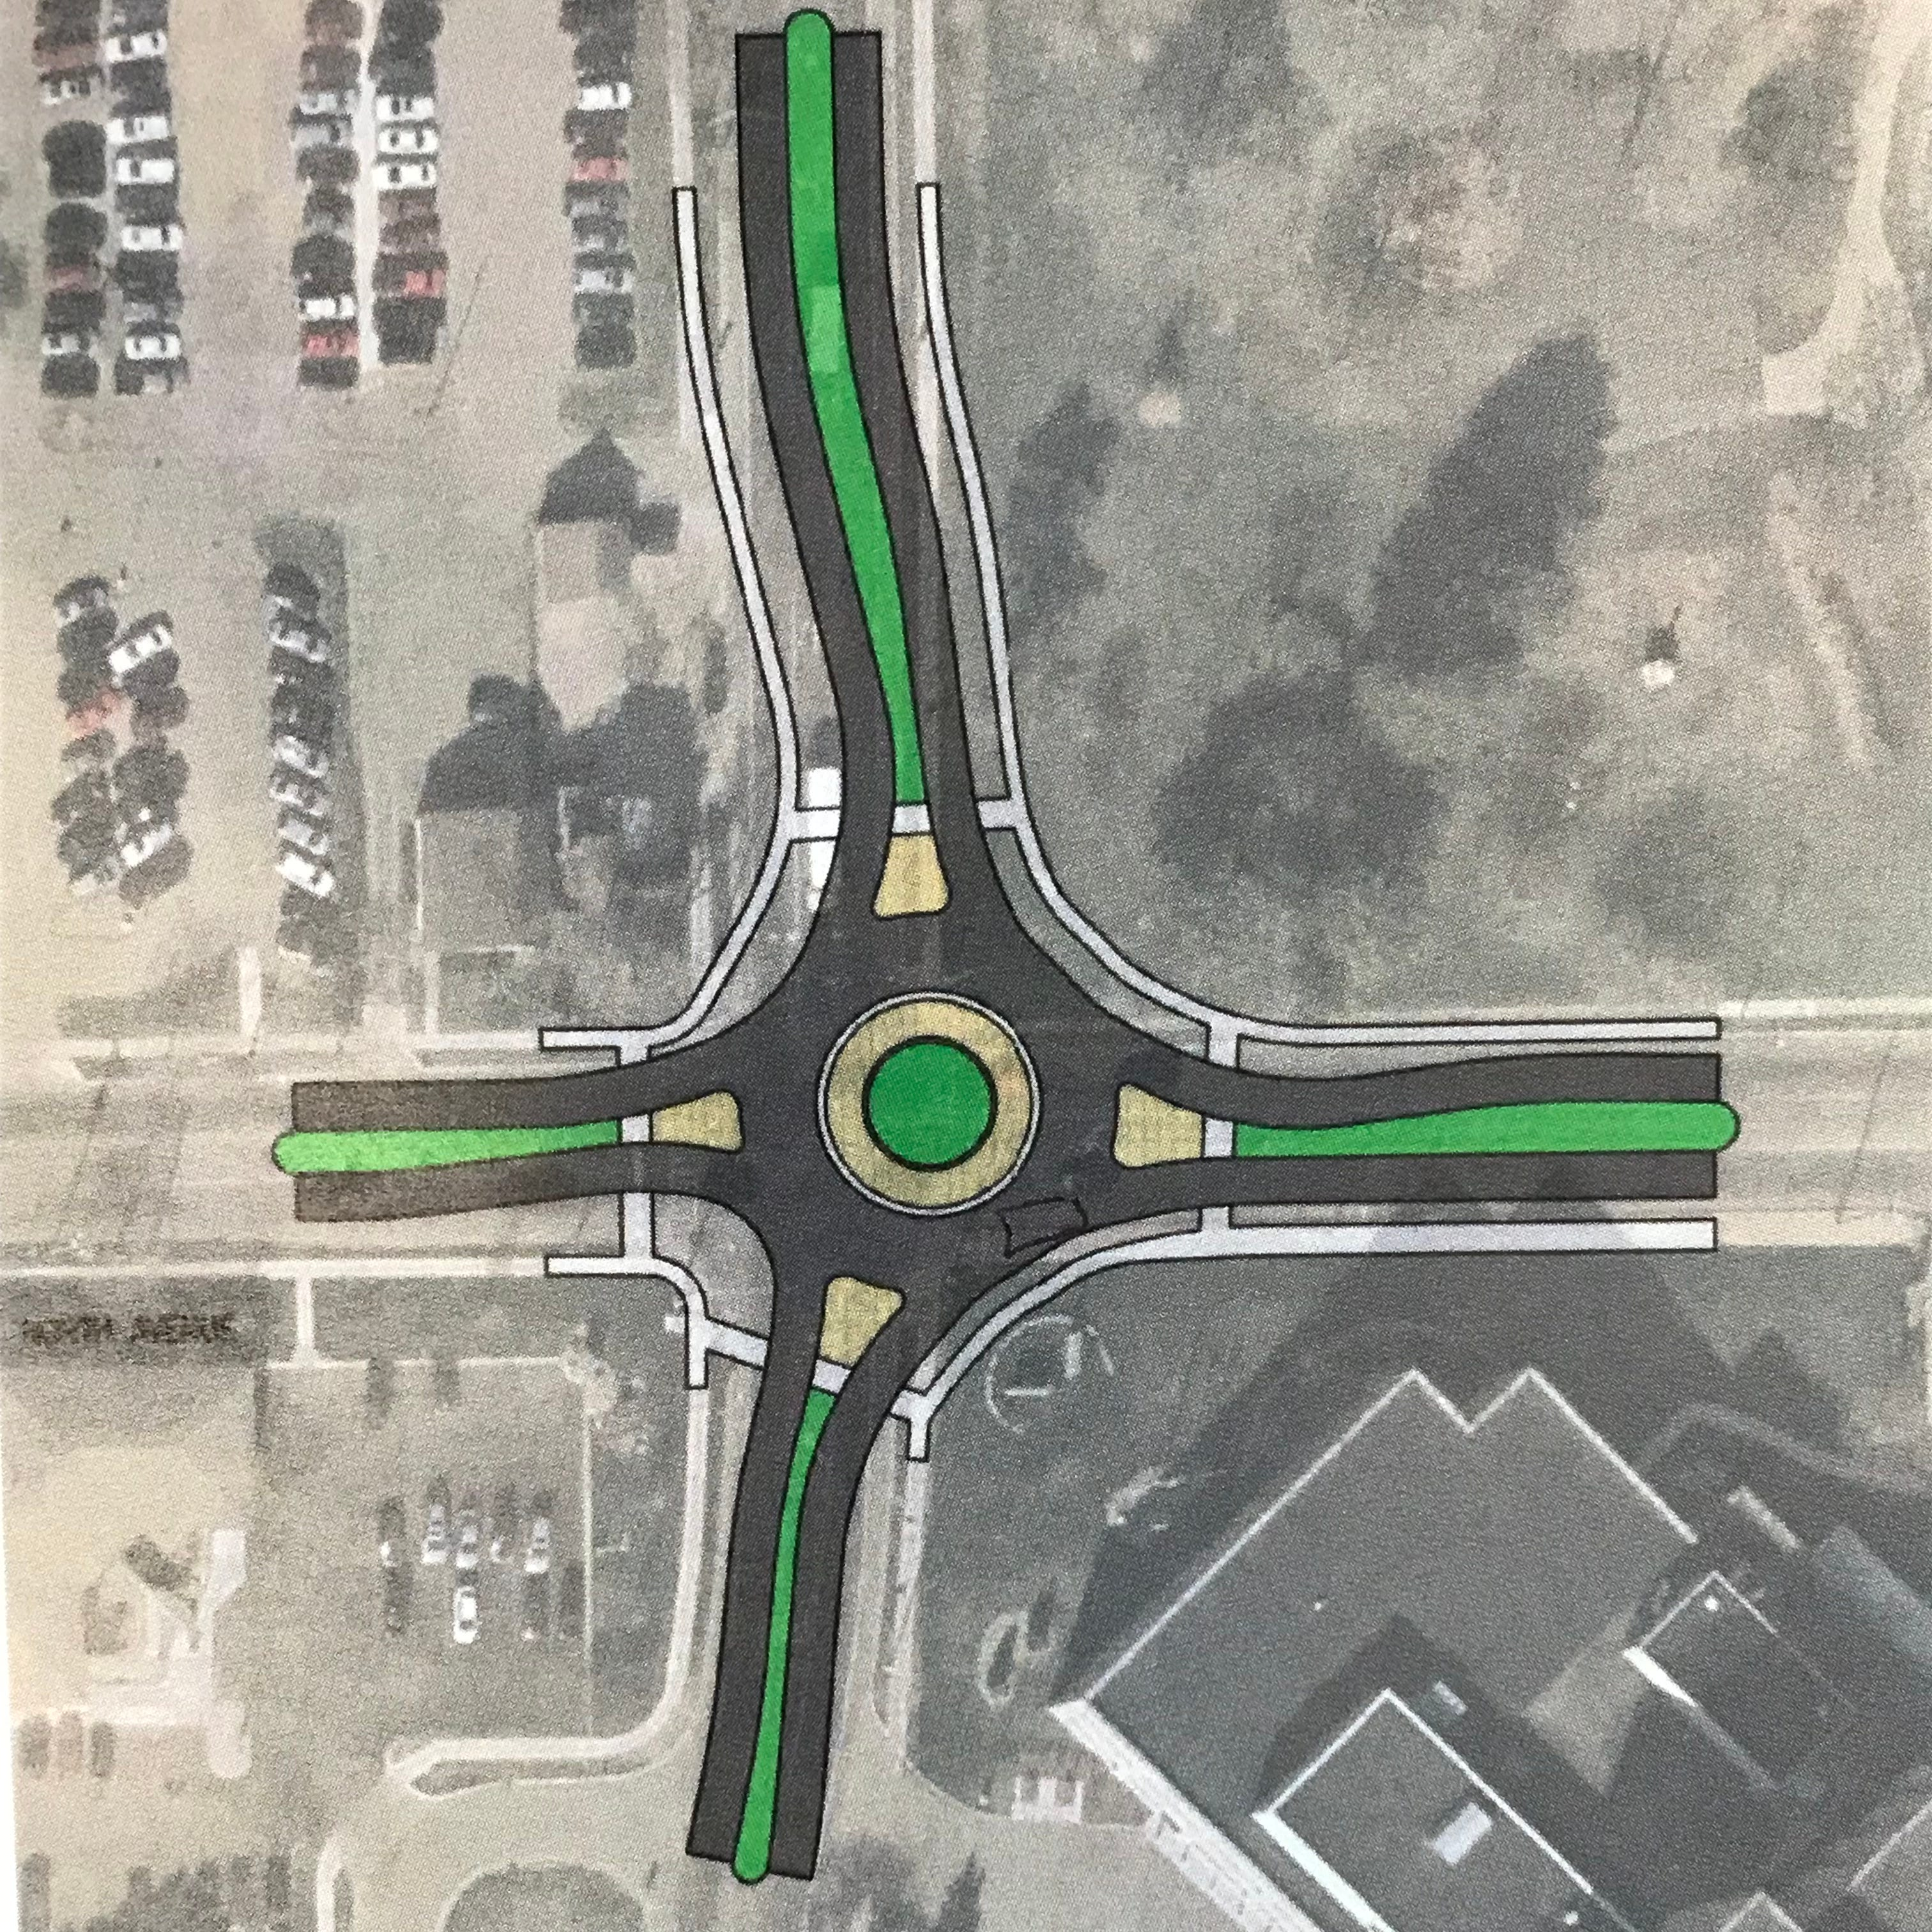 After fatal crash, Battle Creek wants to put a roundabout at the intersection of North and Emmett